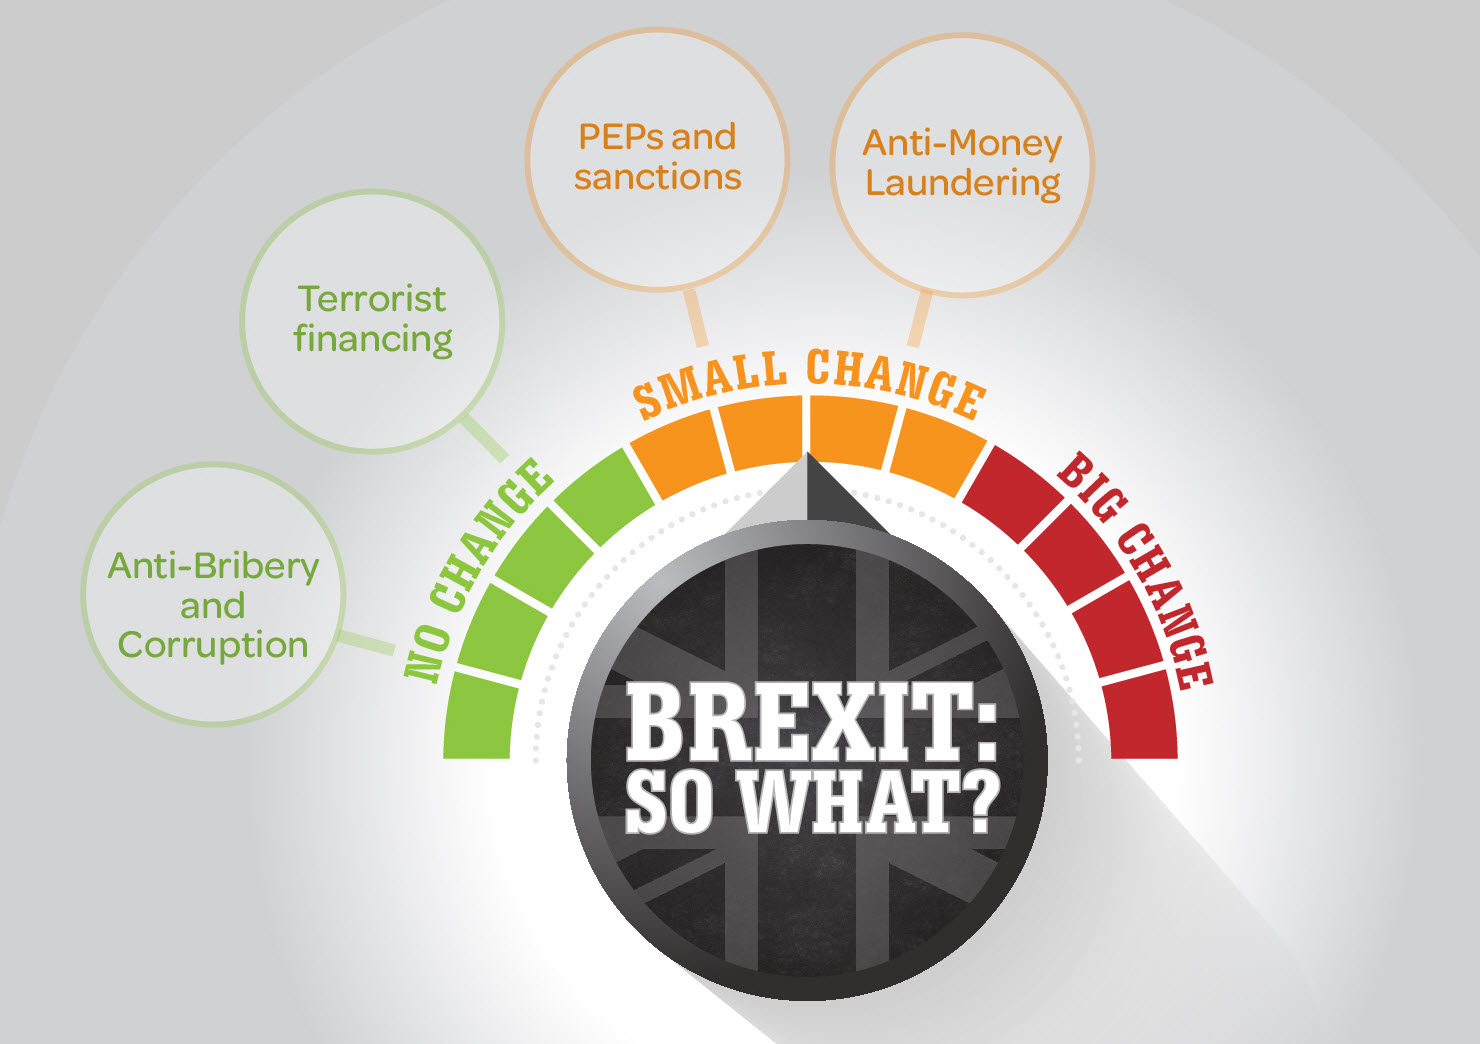 Will Brexit affect UK's approach to tackling financial crime?